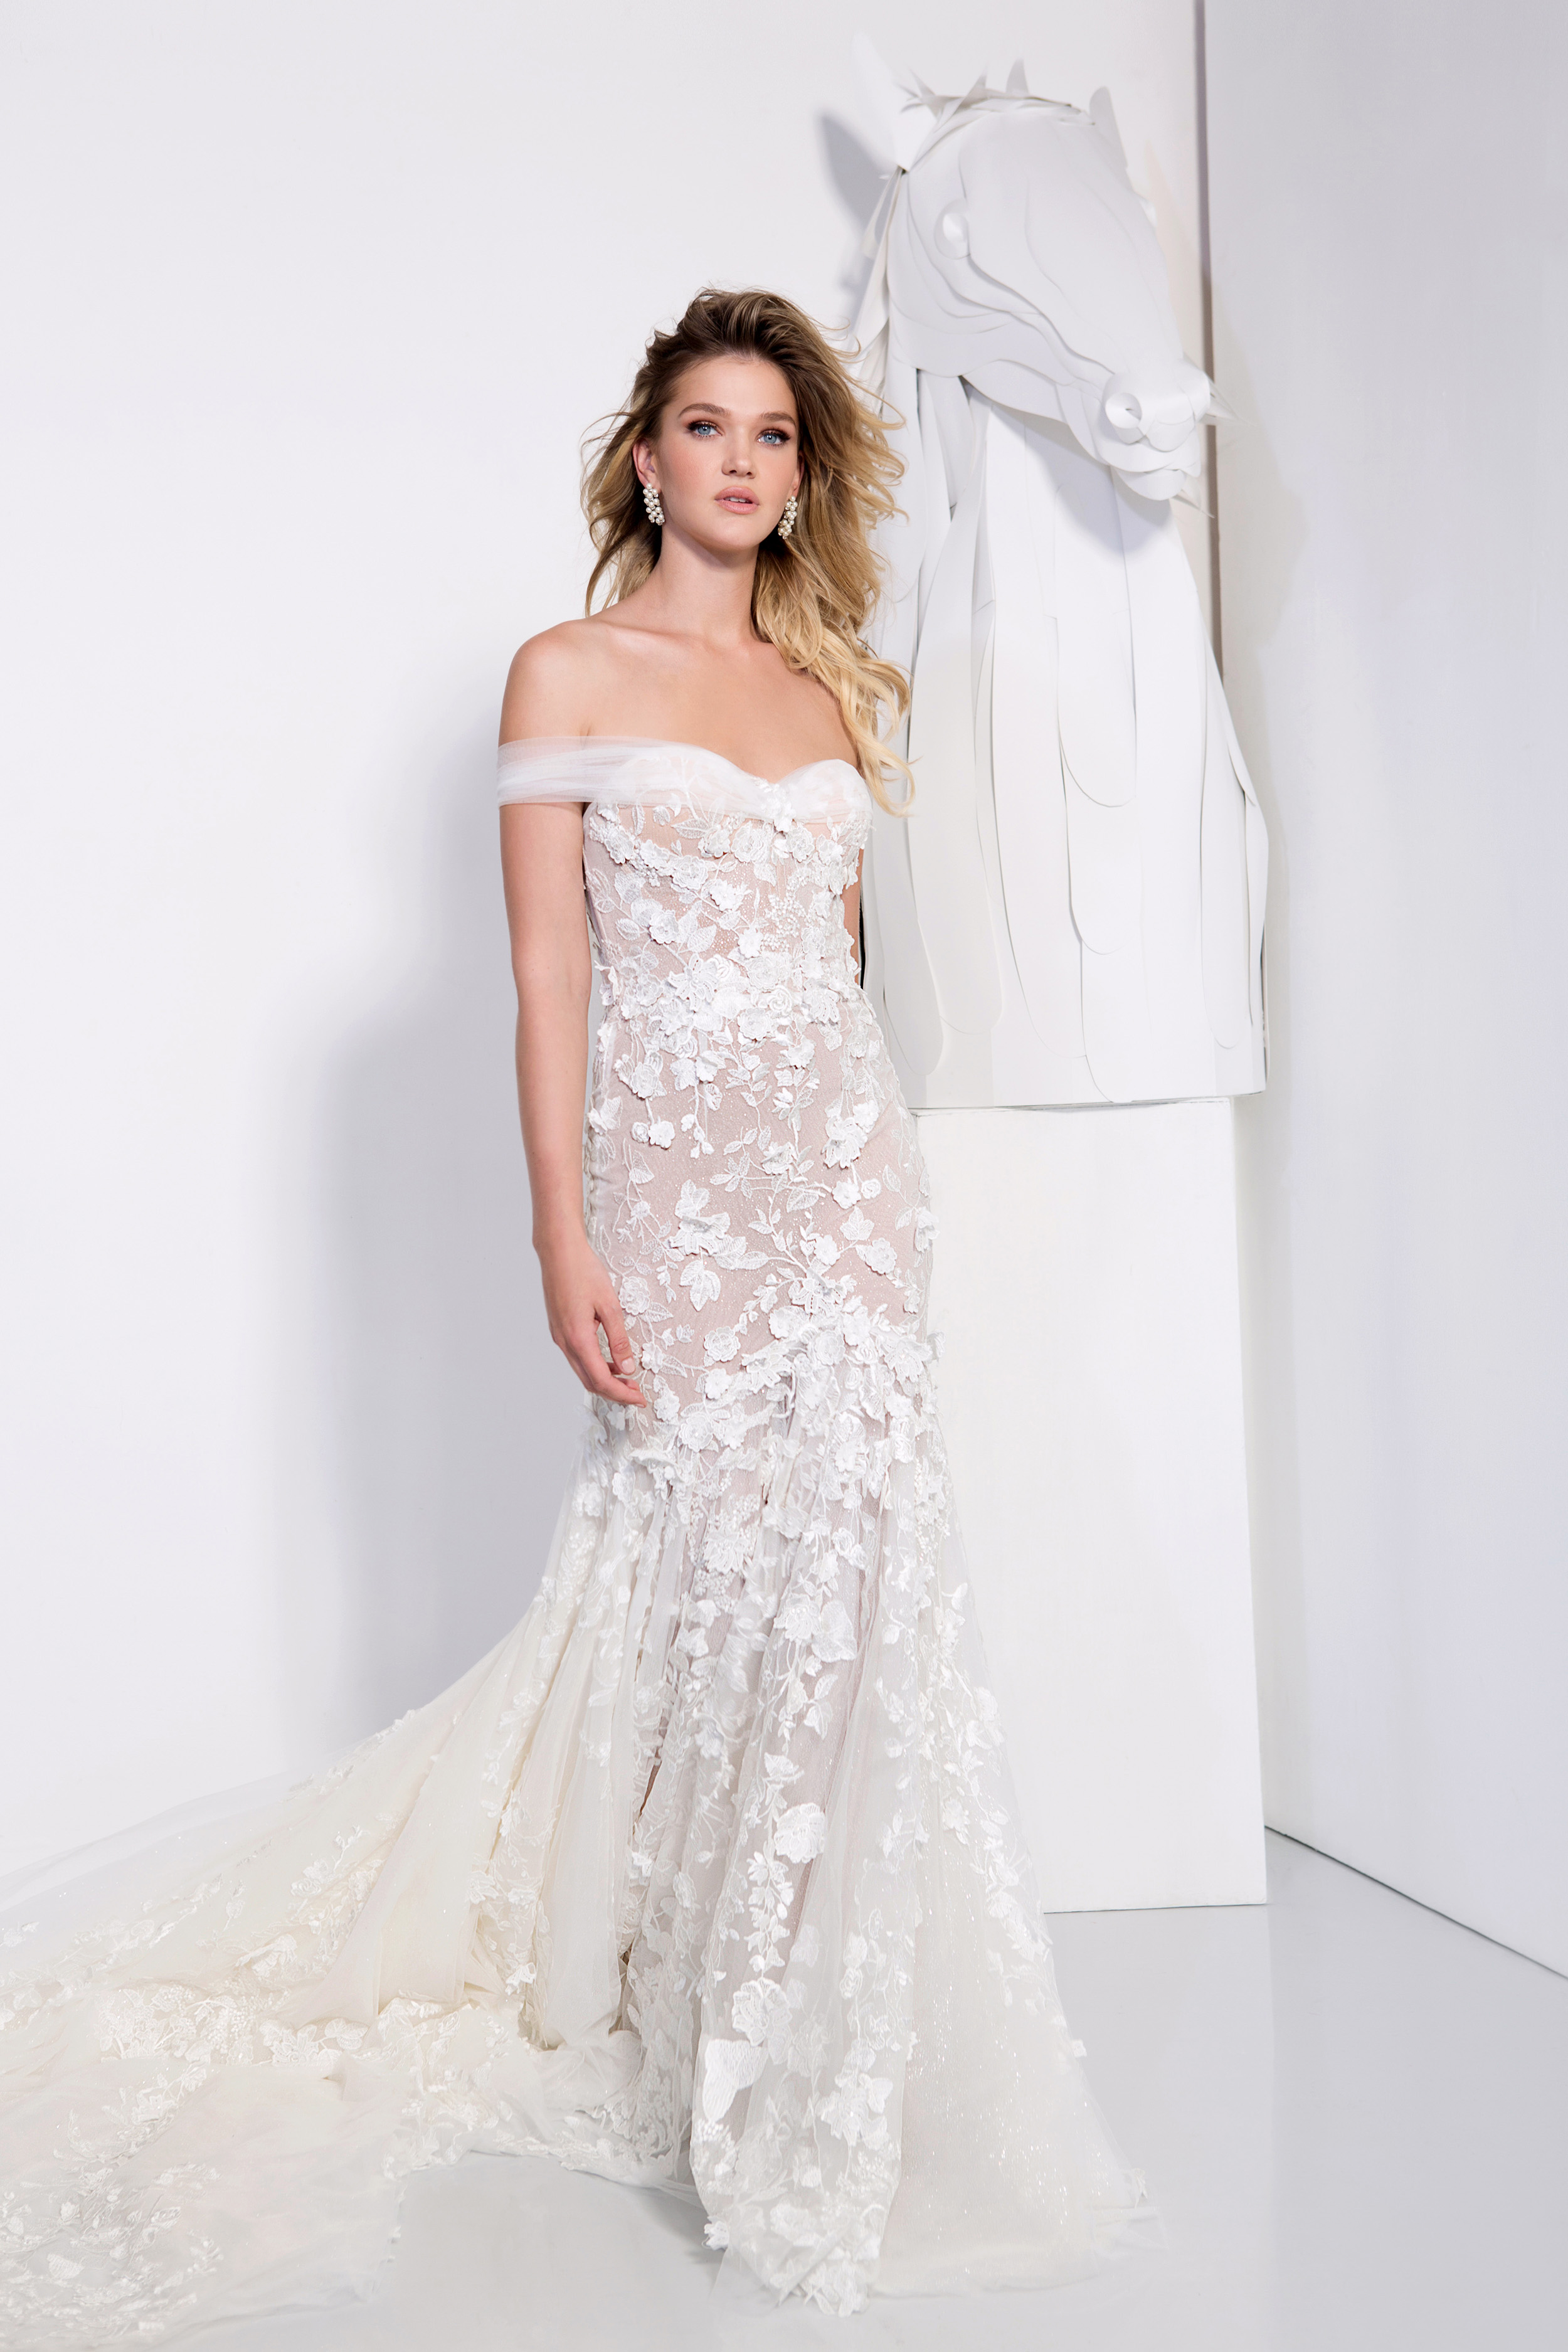 persy wedding dress spring 2019 mermaid off the shoulder floral applique gown